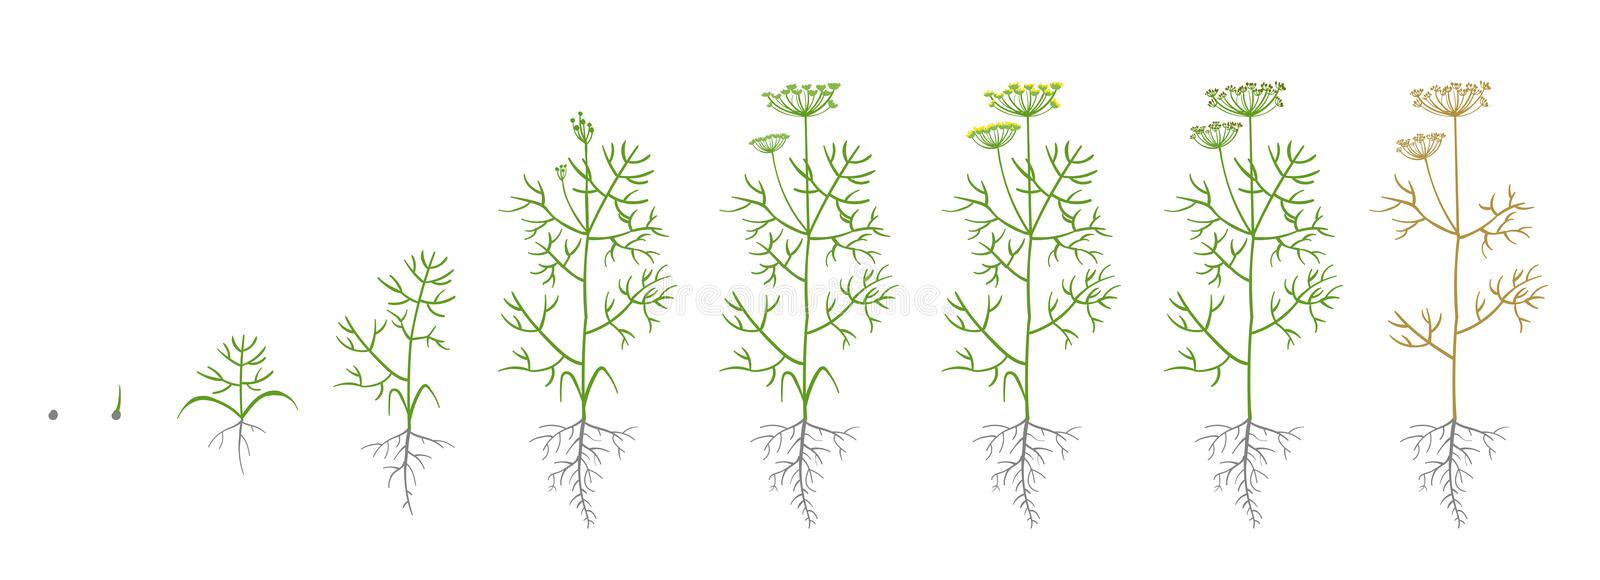 Dill, fennel plant. Growth stages. Vector illustration. Anethum. Ripening period. Dill life cycle with root and seeds. Use fertilizers. Flat color draw on white stock illustration